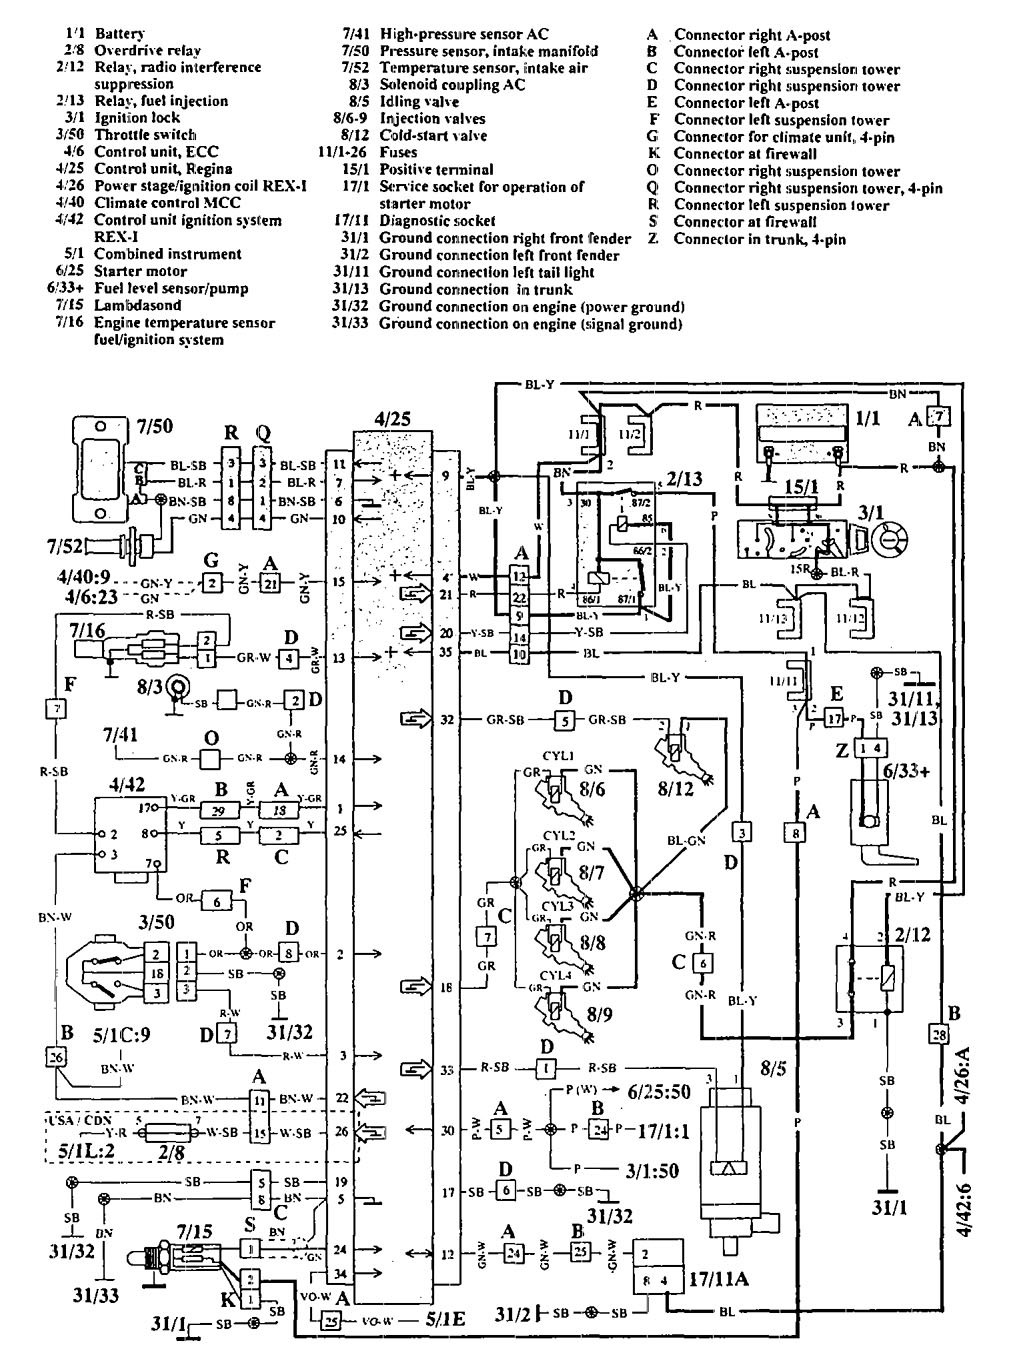 volvo 940 wiring diagram fuel controls v1 1 1992 volvo 940 wiring diagram volvo 940 wiring diagram at panicattacktreatment.co